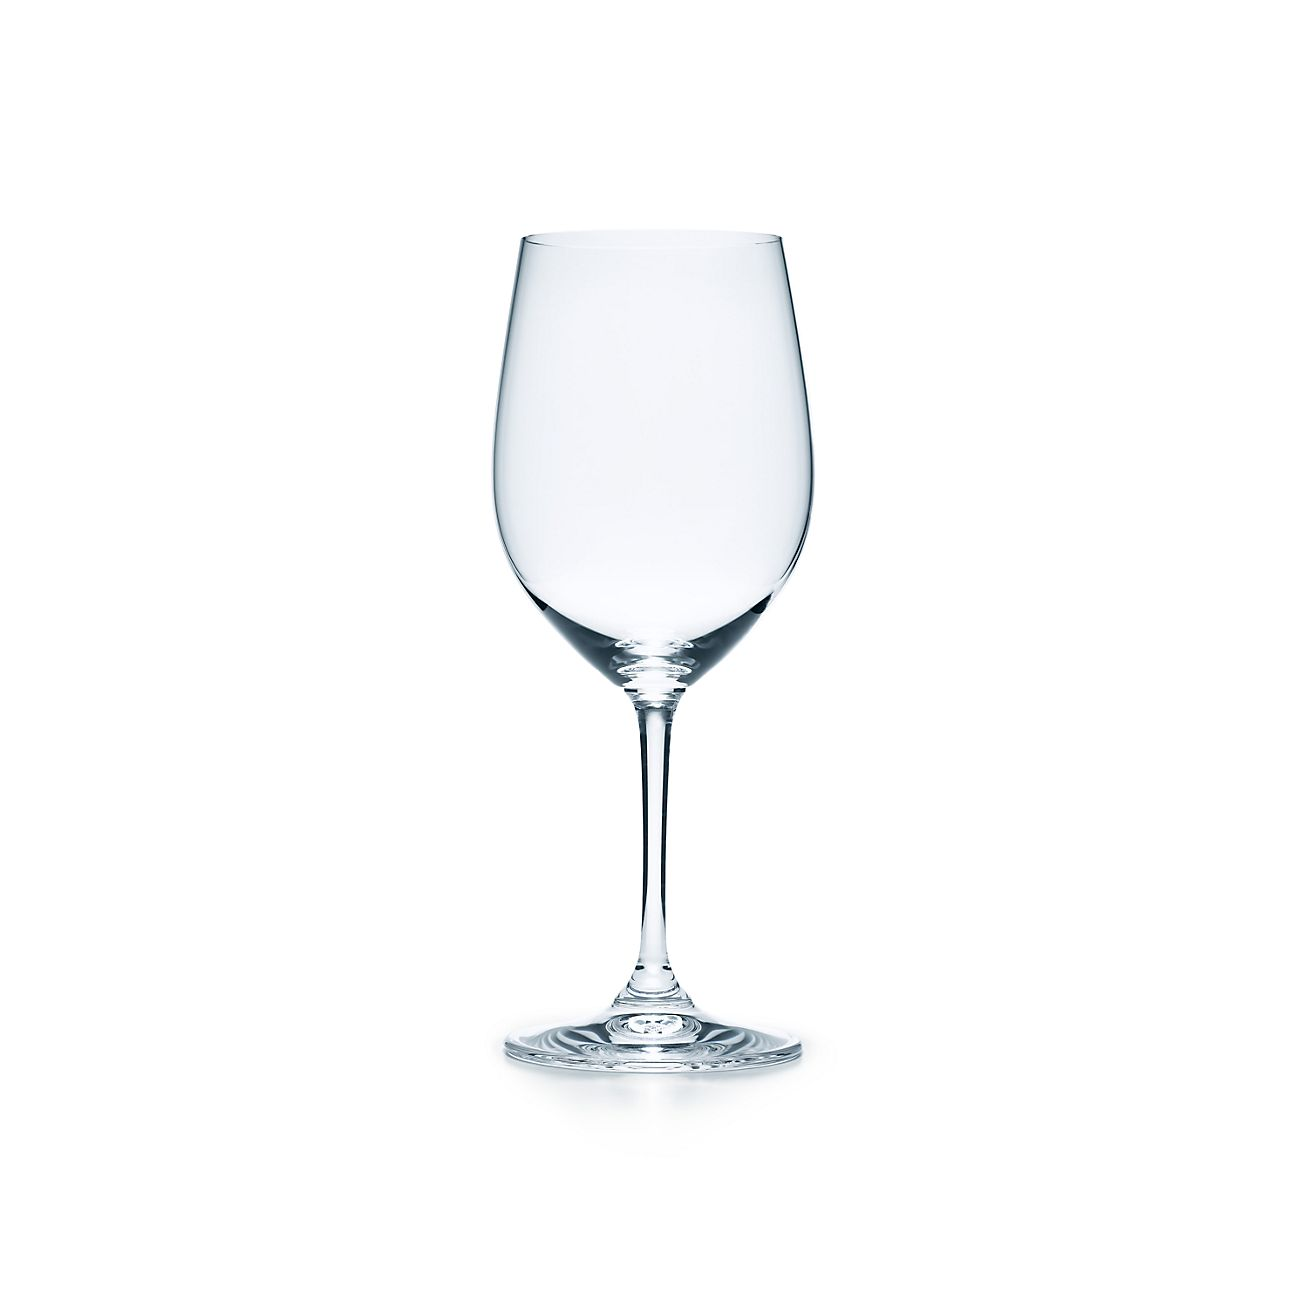 Chardonnay Wine Glass Riedel Vinum Chardonnay Wine Glass In Crystal Tiffany And Co